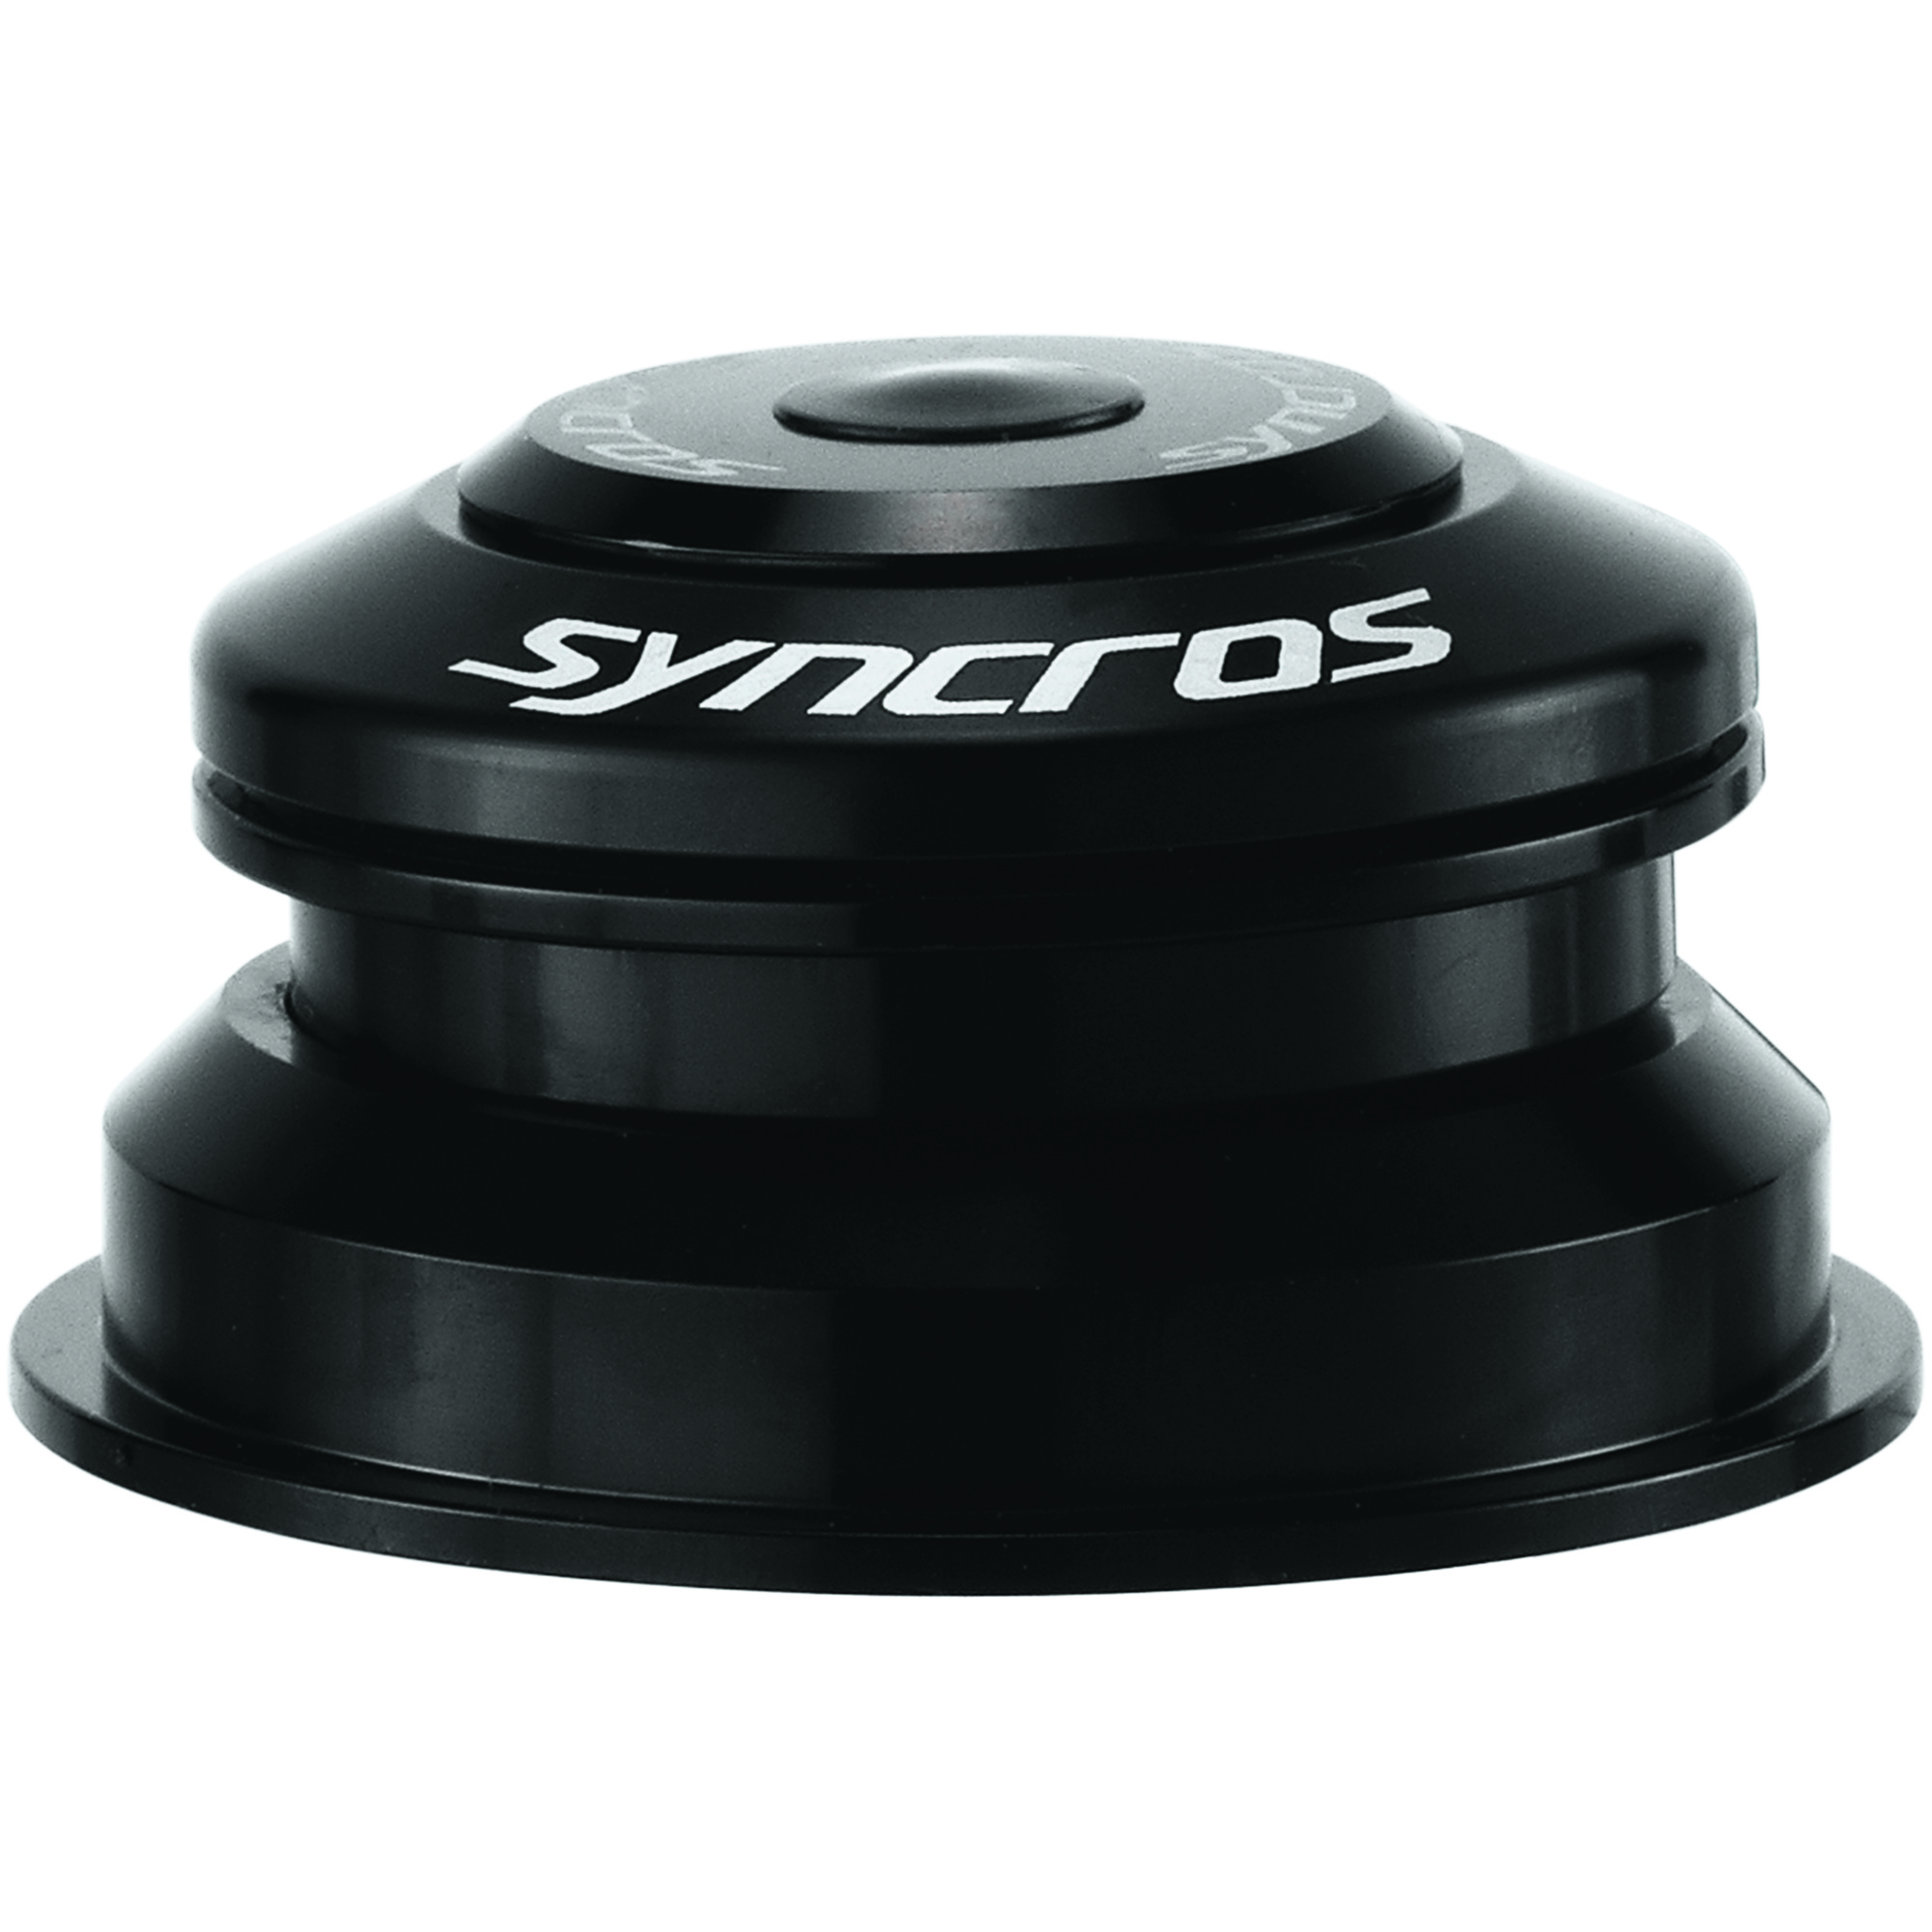 SYNCROS ZS44/28 6 - ZS55/40 Headset